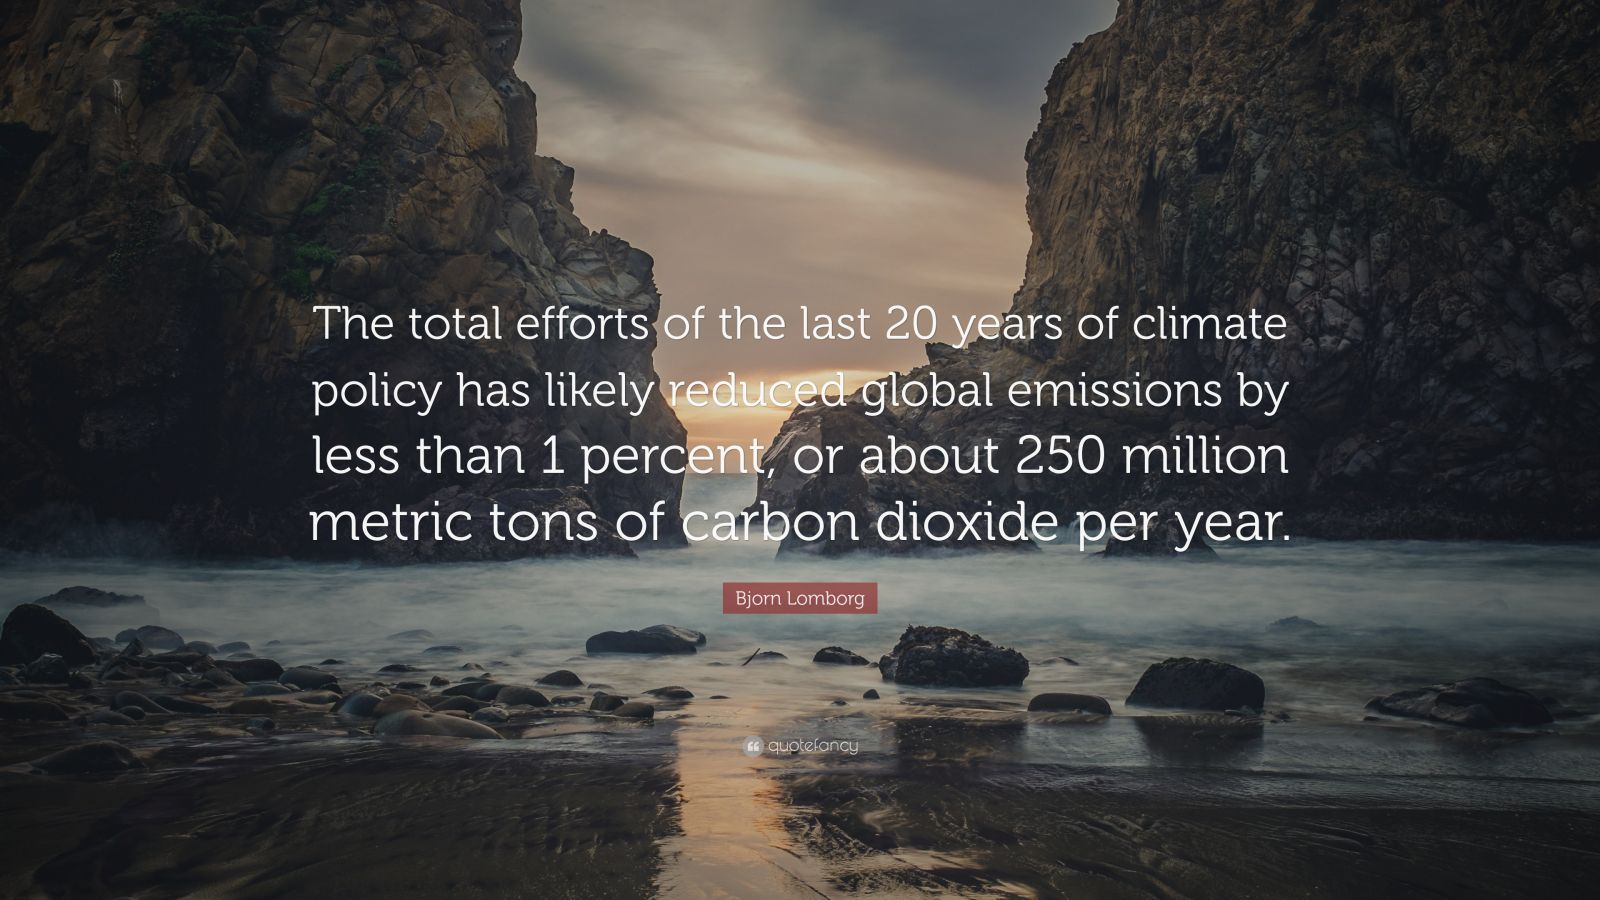 """Bjorn Lomborg Quote: """"The total efforts of the last 20 years of climate policy has likely reduced global emissions by less than 1 percent, or about 250 million metric tons of carbon dioxide per year."""""""